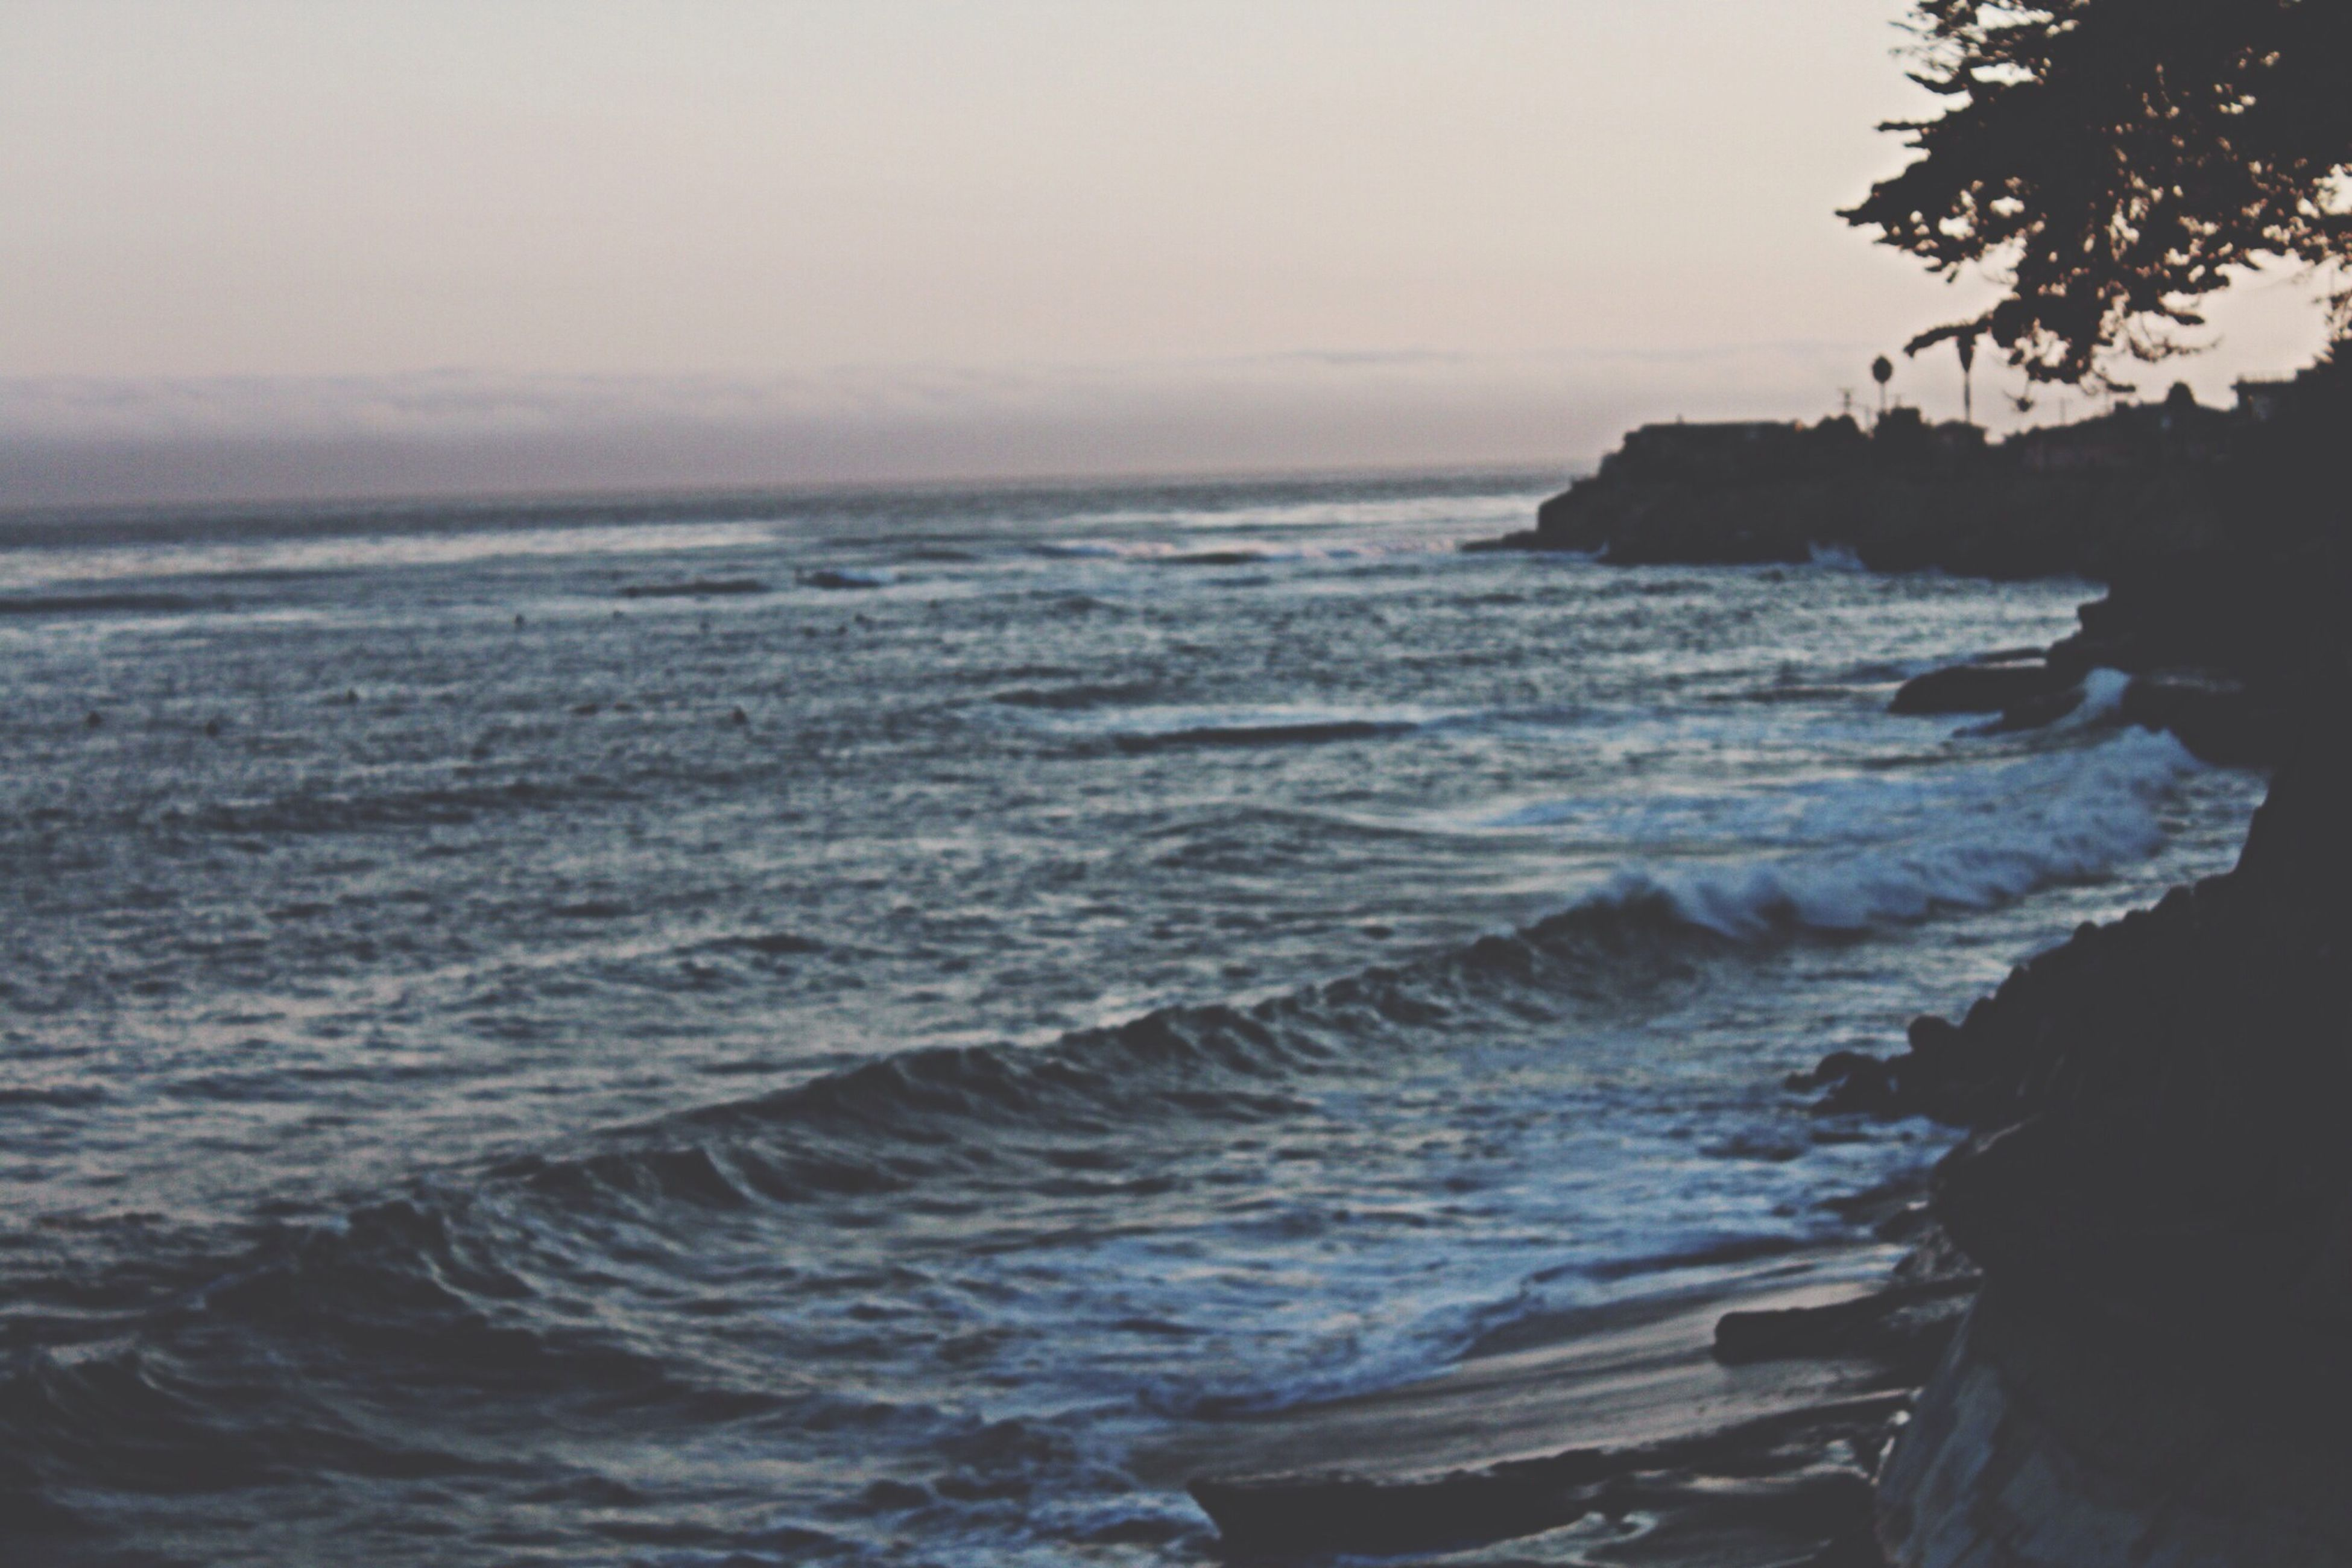 sea, water, horizon over water, scenics, beauty in nature, tranquil scene, wave, tranquility, nature, surf, rock - object, clear sky, sky, idyllic, seascape, beach, shore, rock formation, rippled, coastline